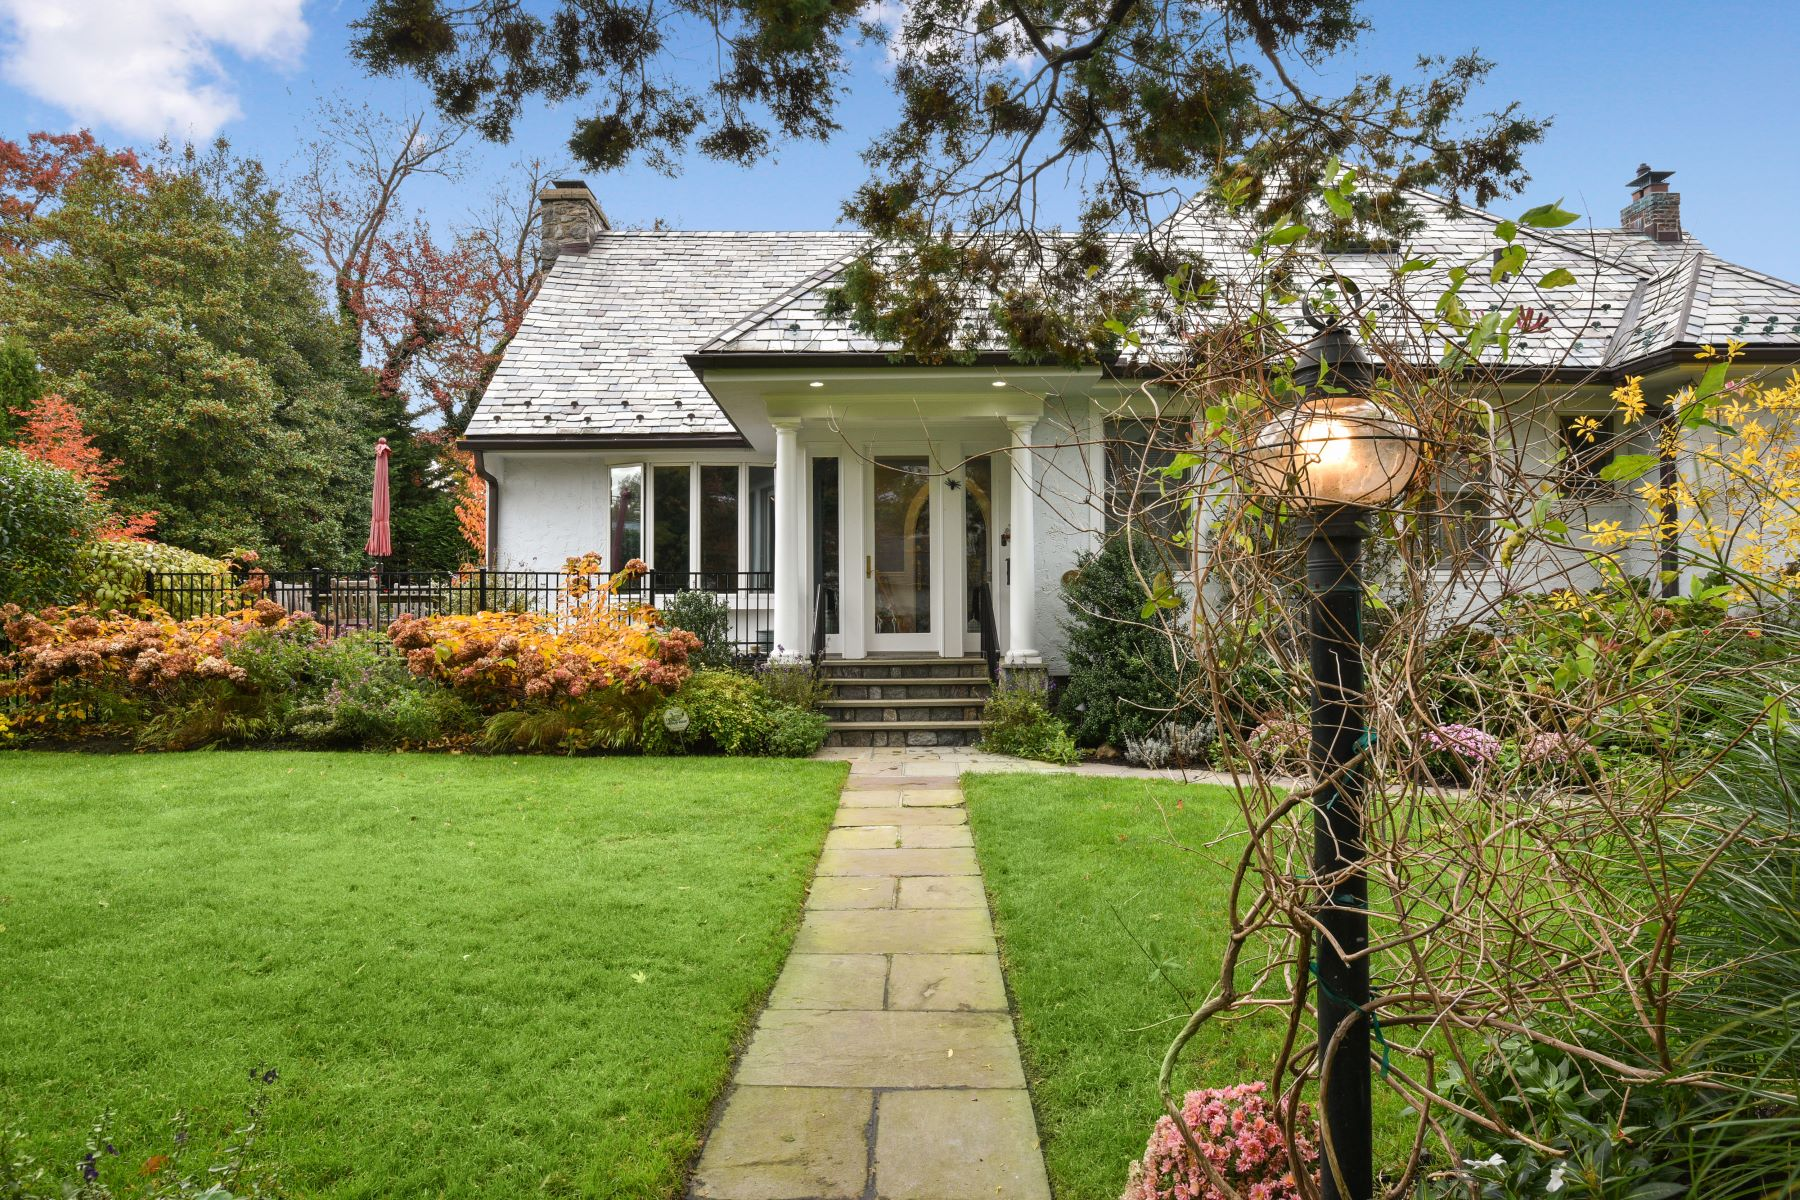 Single Family Homes for Sale at 28 Linden Avenue Larchmont, New York 10538 United States